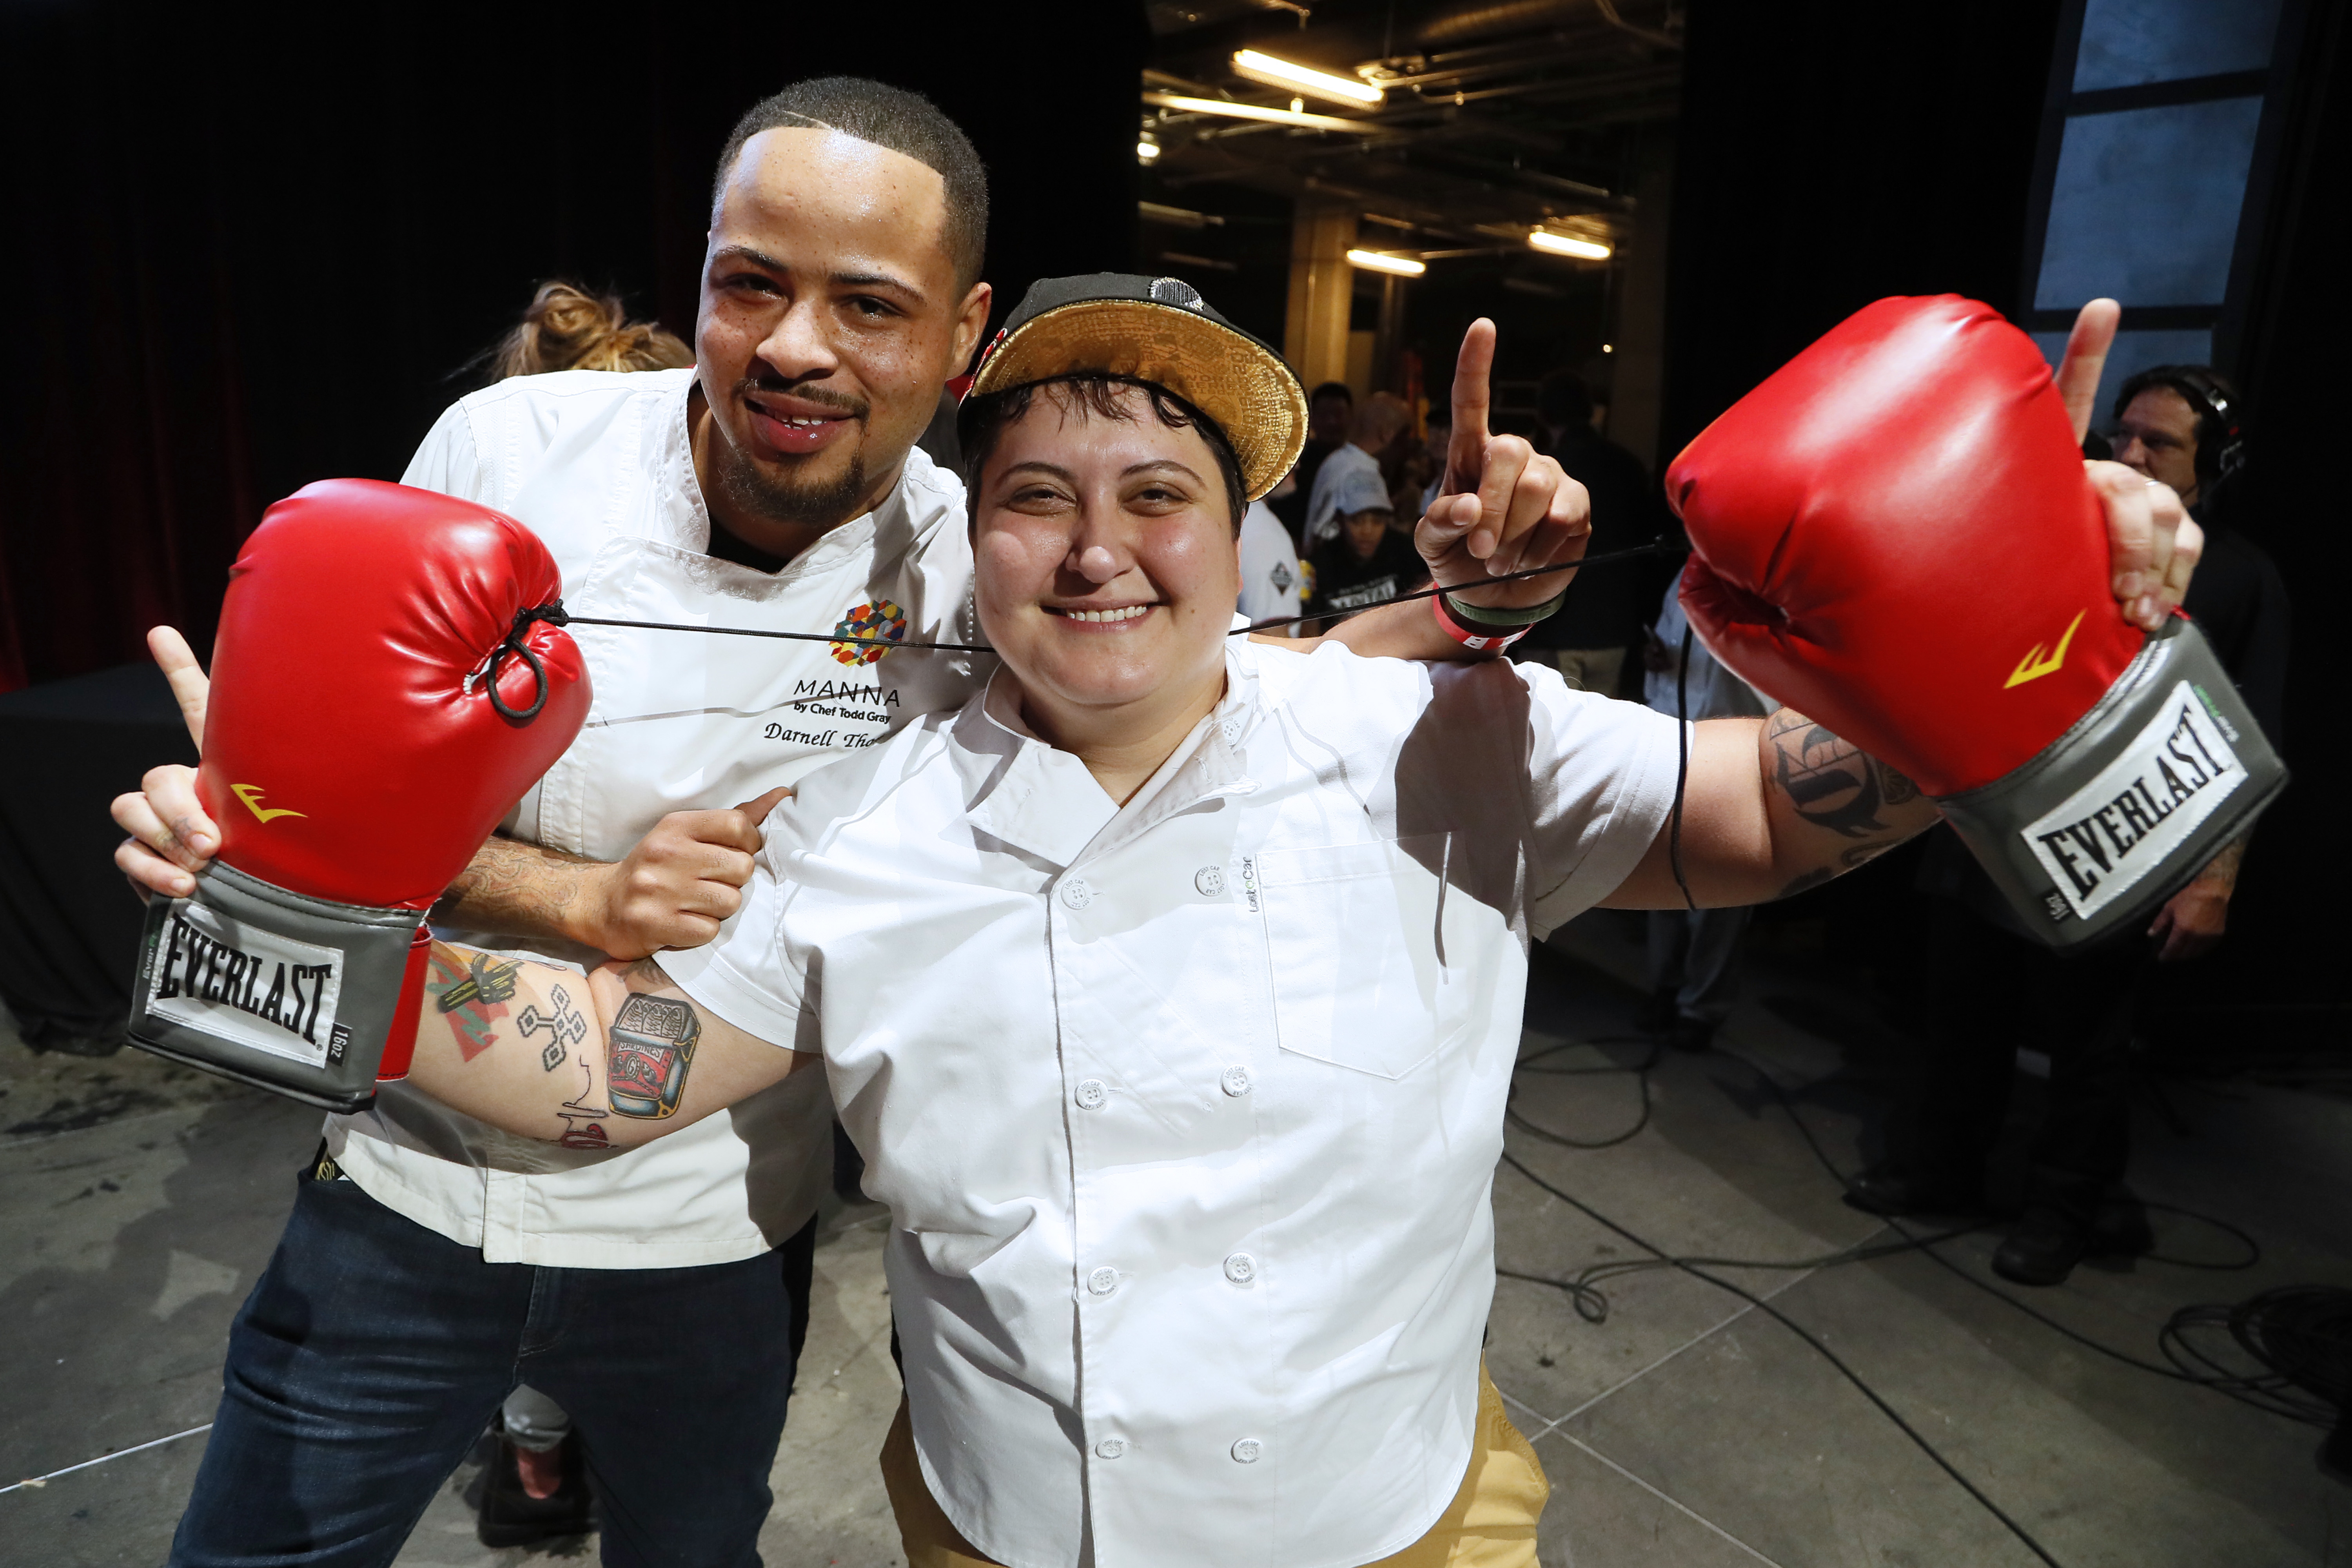 Chef Marcelle Afram celebrates her win Wednesday night at DC Central Kitchen's Capital Food Fight by holding up a pair of boxing gloves.